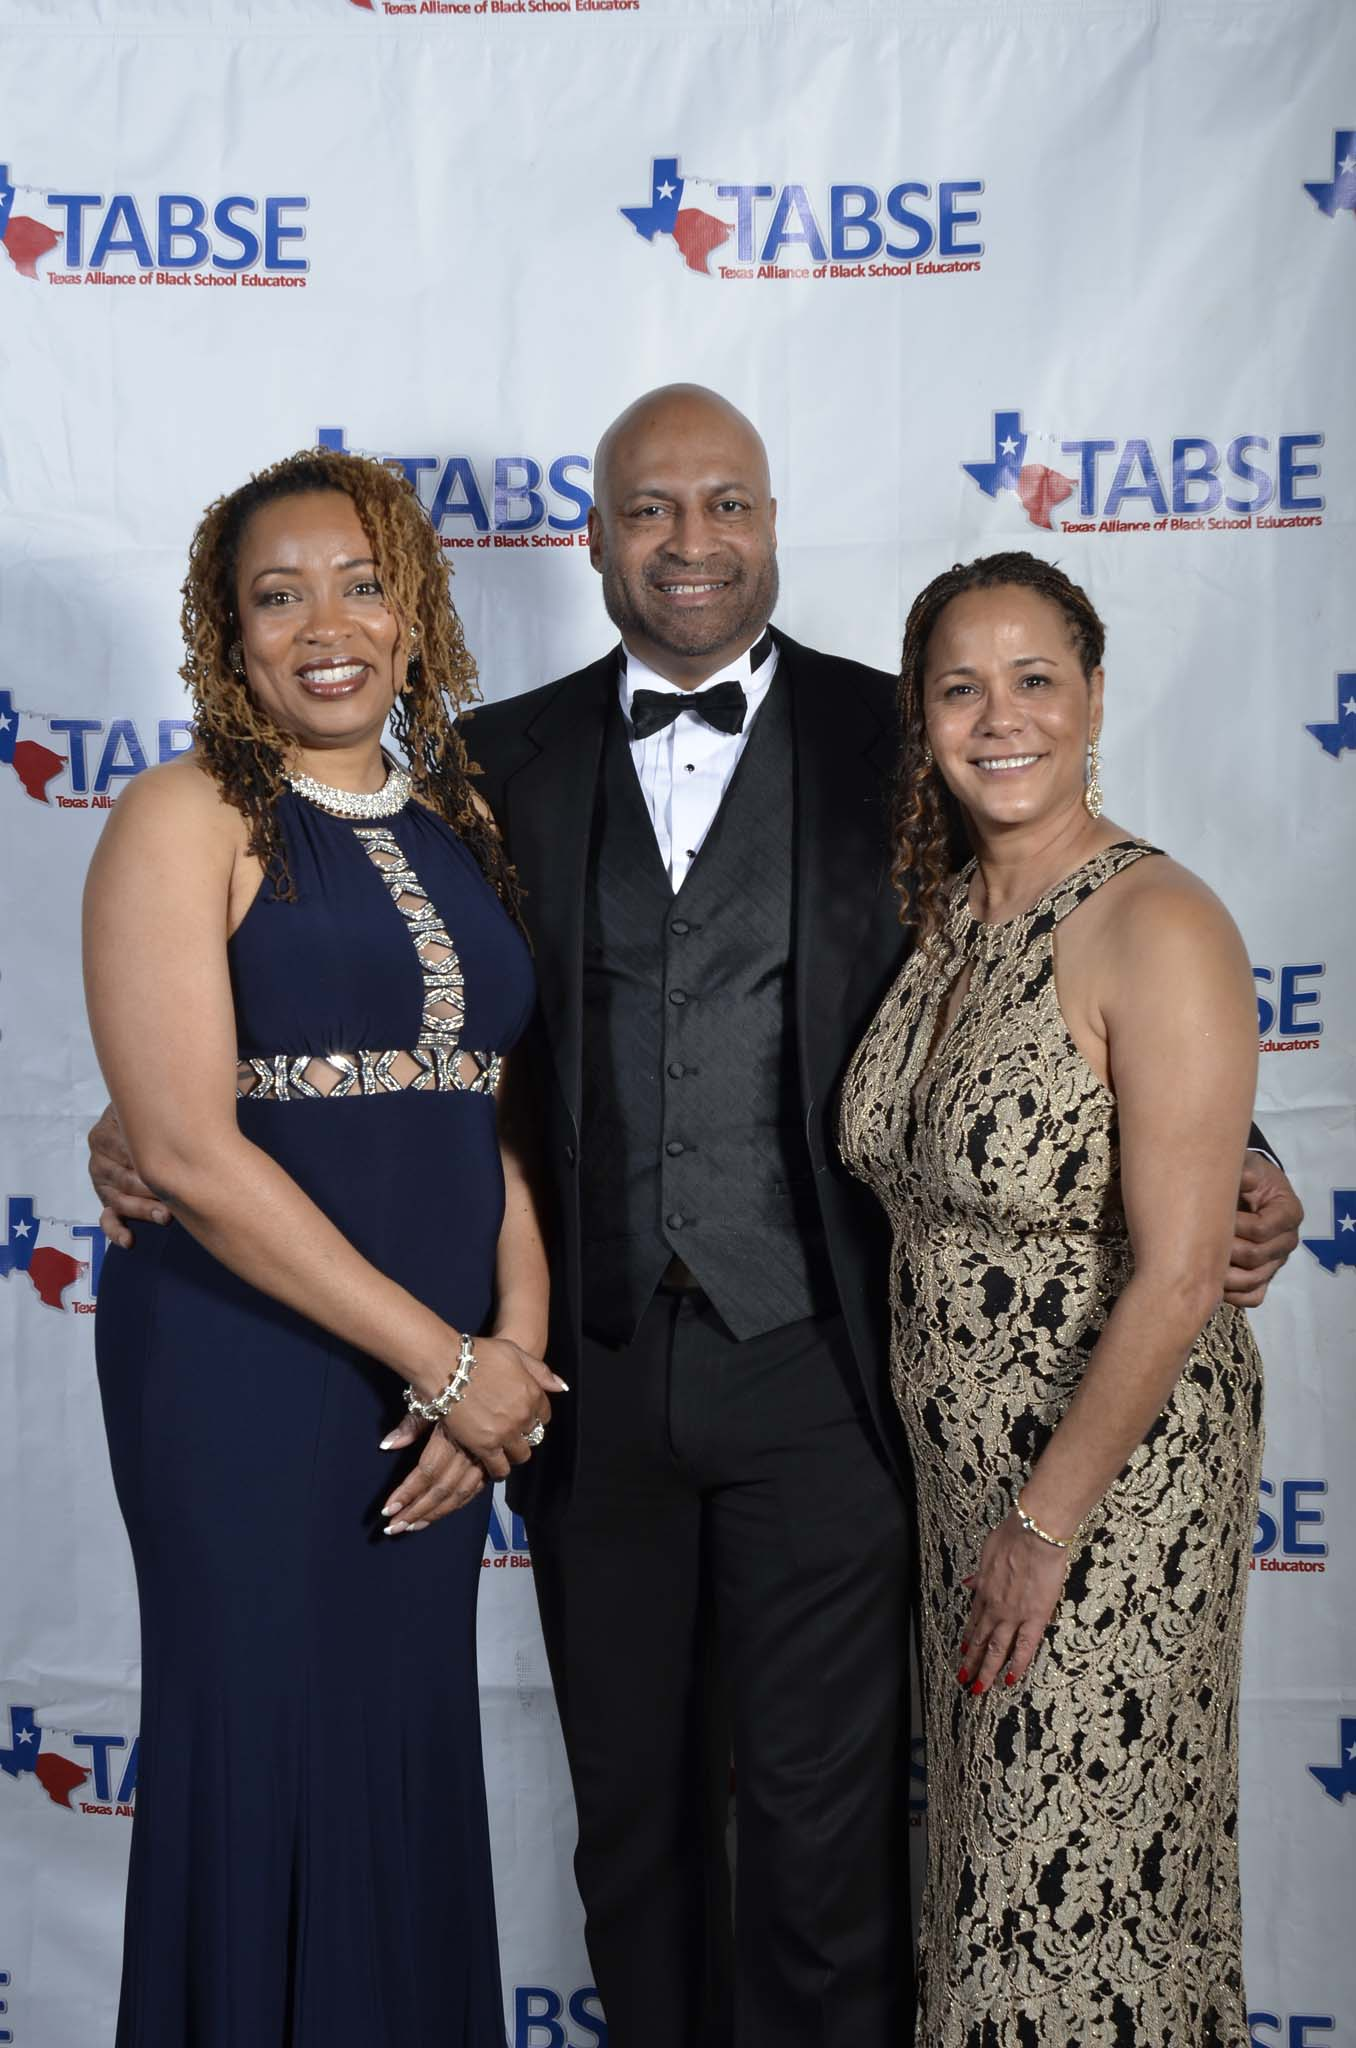 TABSE 33rd State Conference - Gala